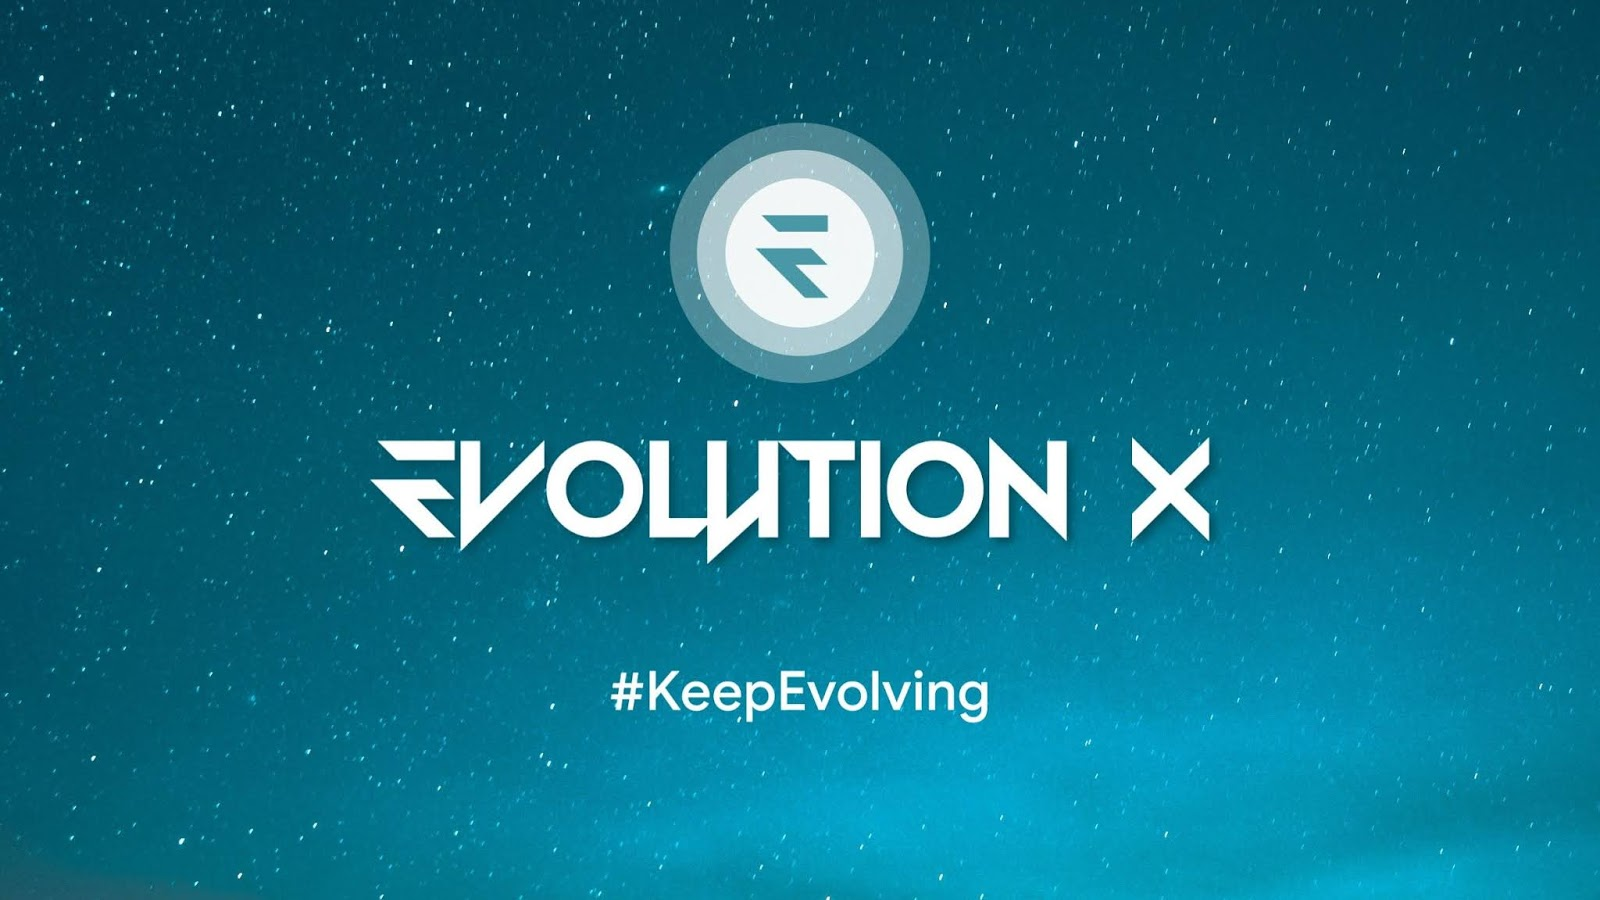 Download Evolution-X 2 0 for Xiaomi Redmi Note 5 / Pro